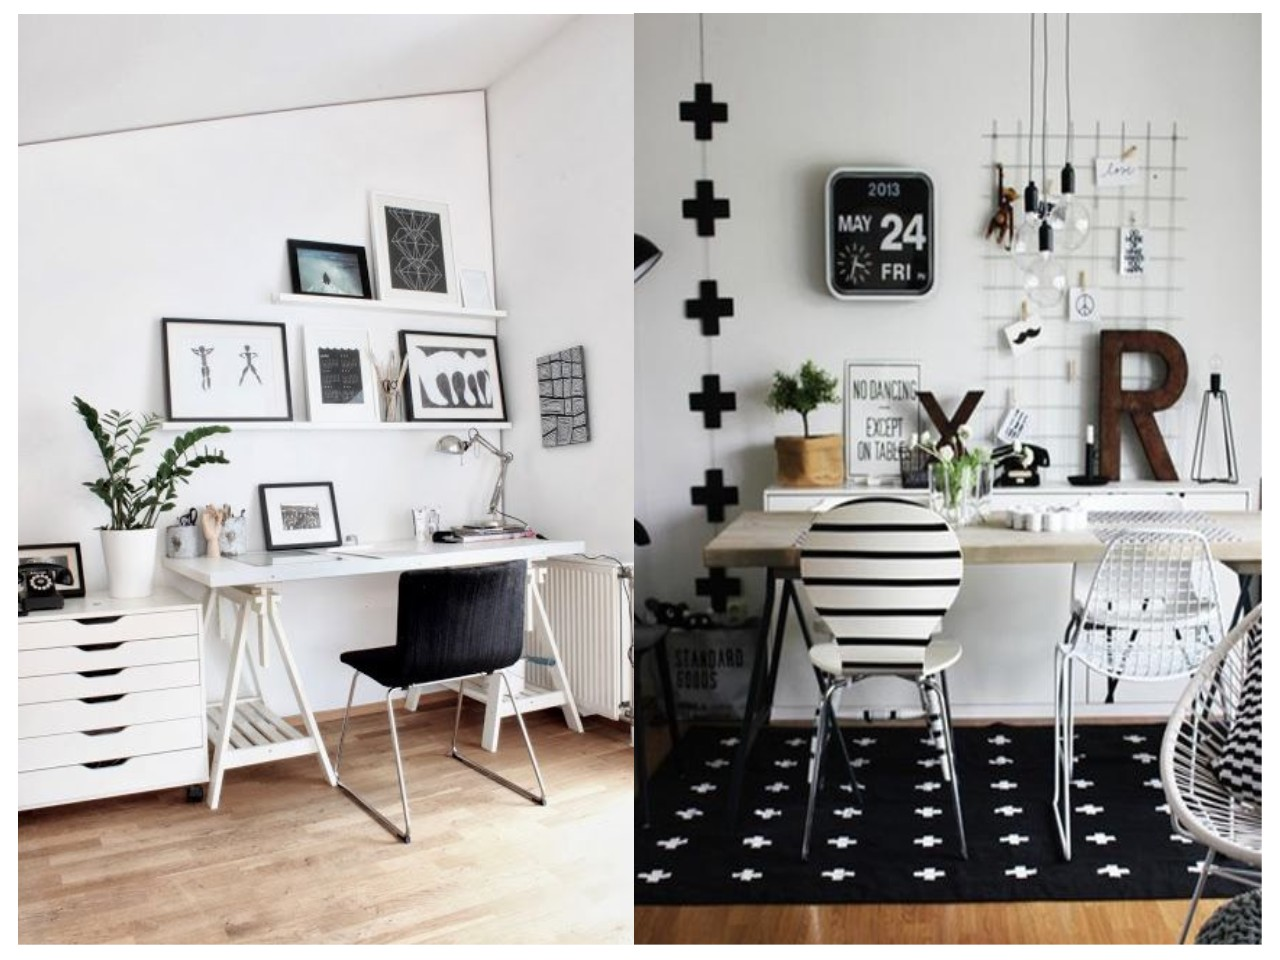 12 tips para conseguir un estudio en blanco y negro perfecto for Decoracion para pared negra